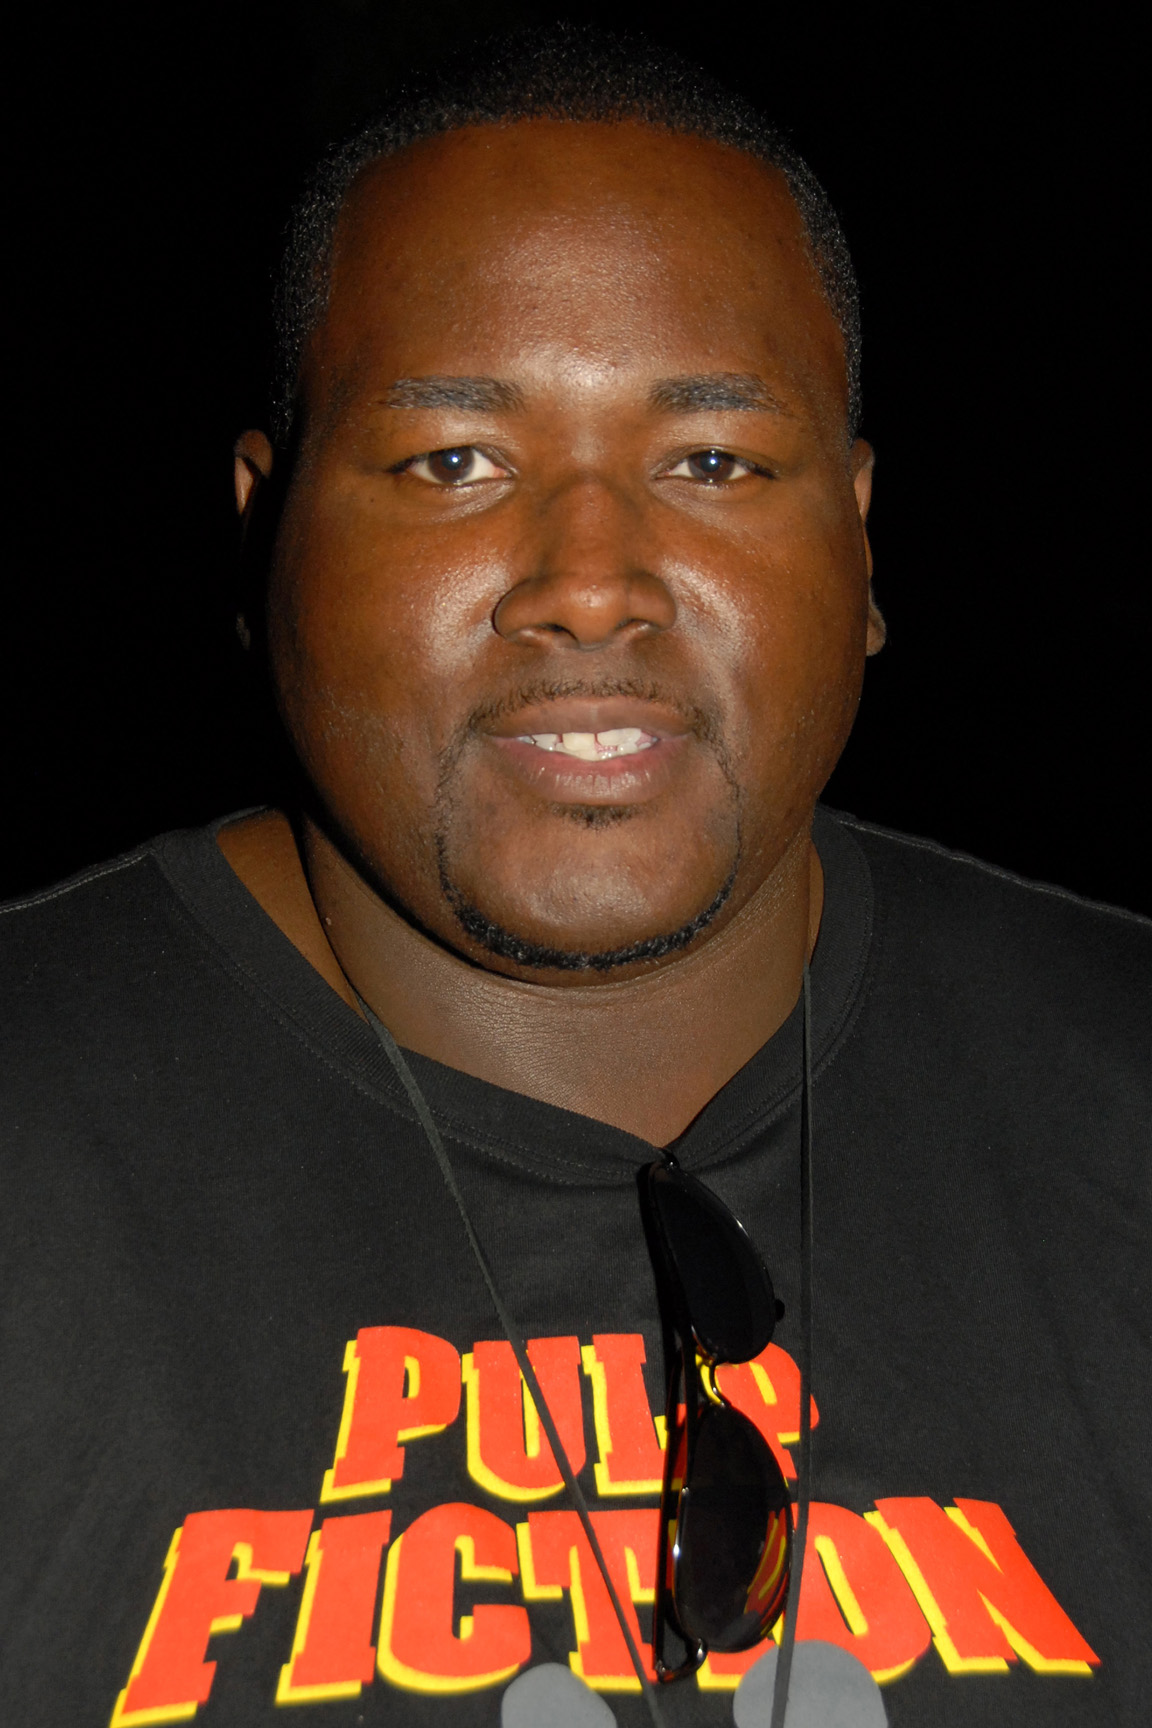 The 33-year old son of father (?) and mother(?), 204 cm tall Quinton Aaron in 2017 photo